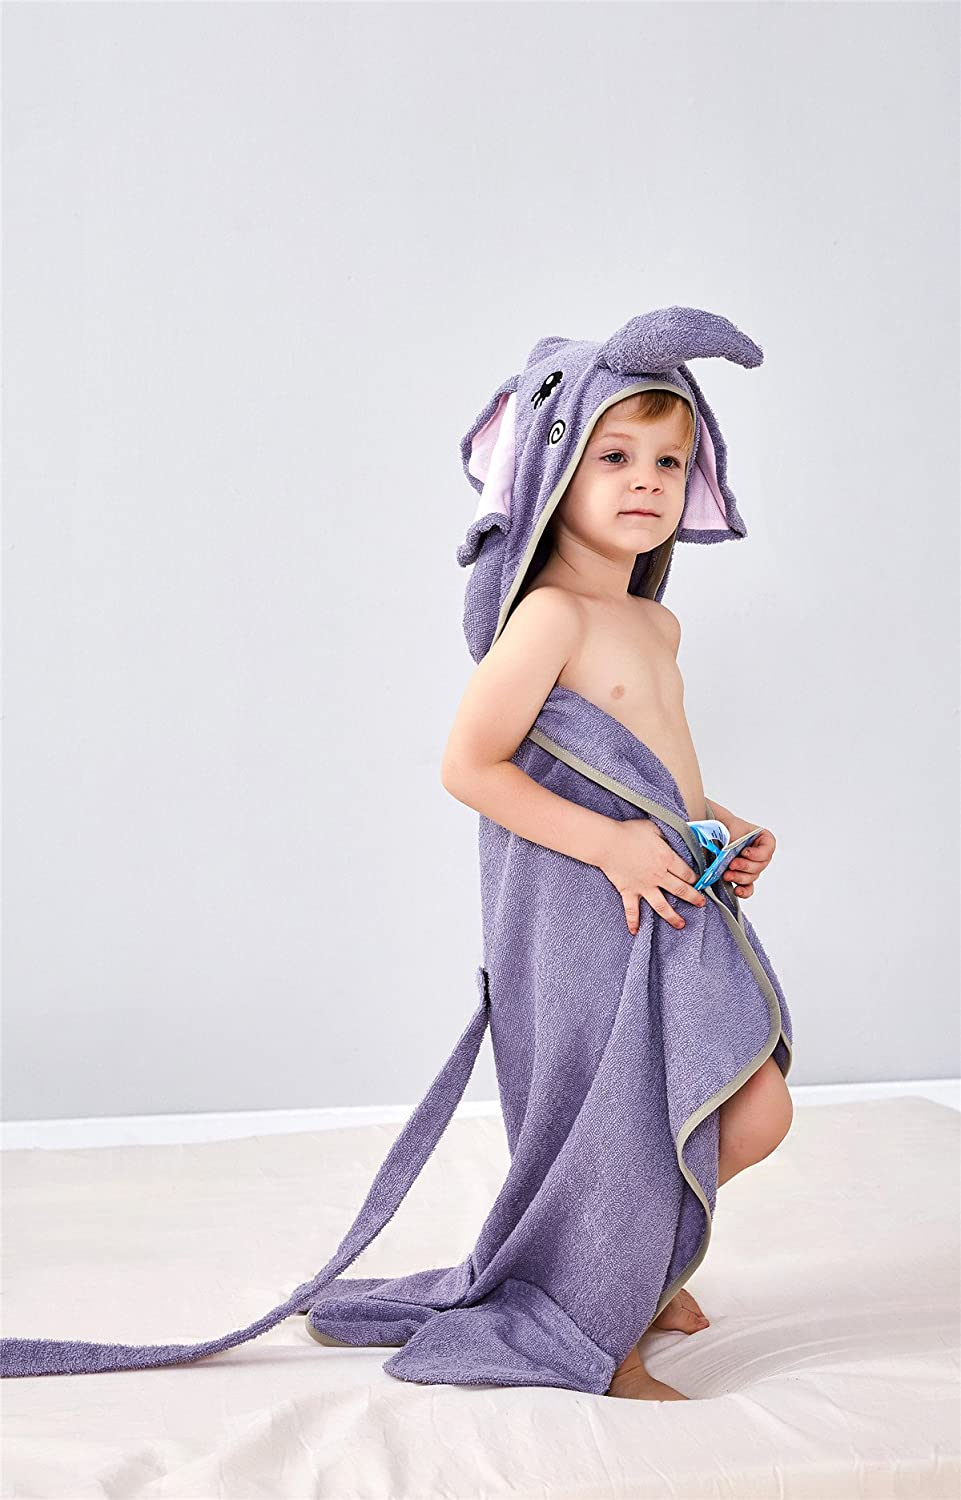 AtoBaby Elephant Childrens Bath Towel Air Conditioning Towel Comfortable Absorbent Green Fashion